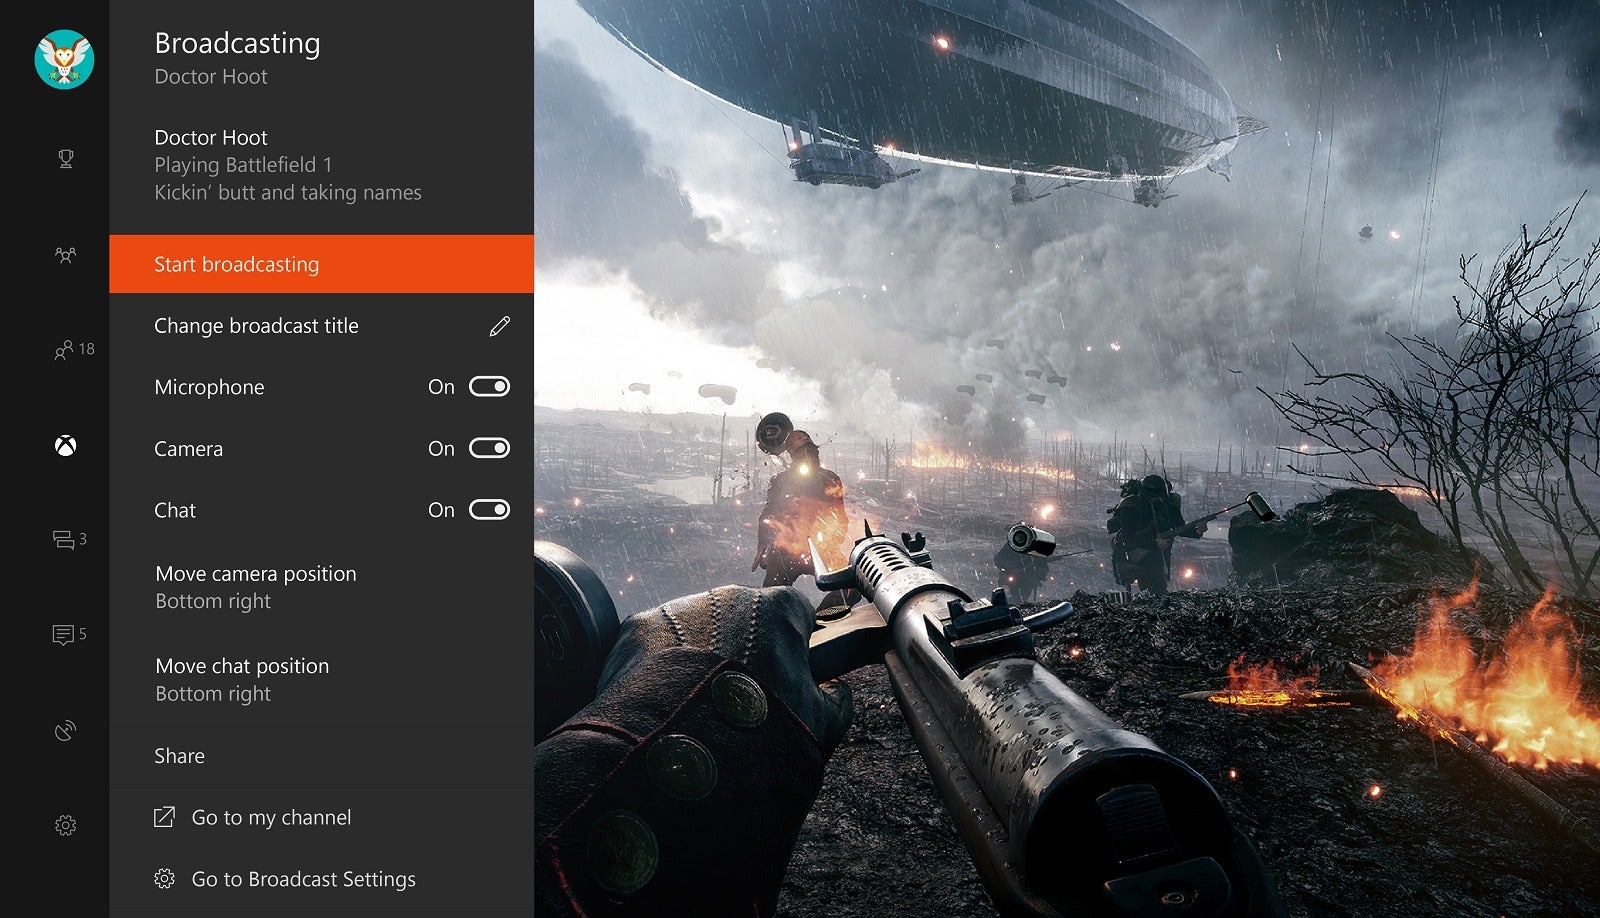 New Windows 10 preview build focuses on PC gaming with Game Mode